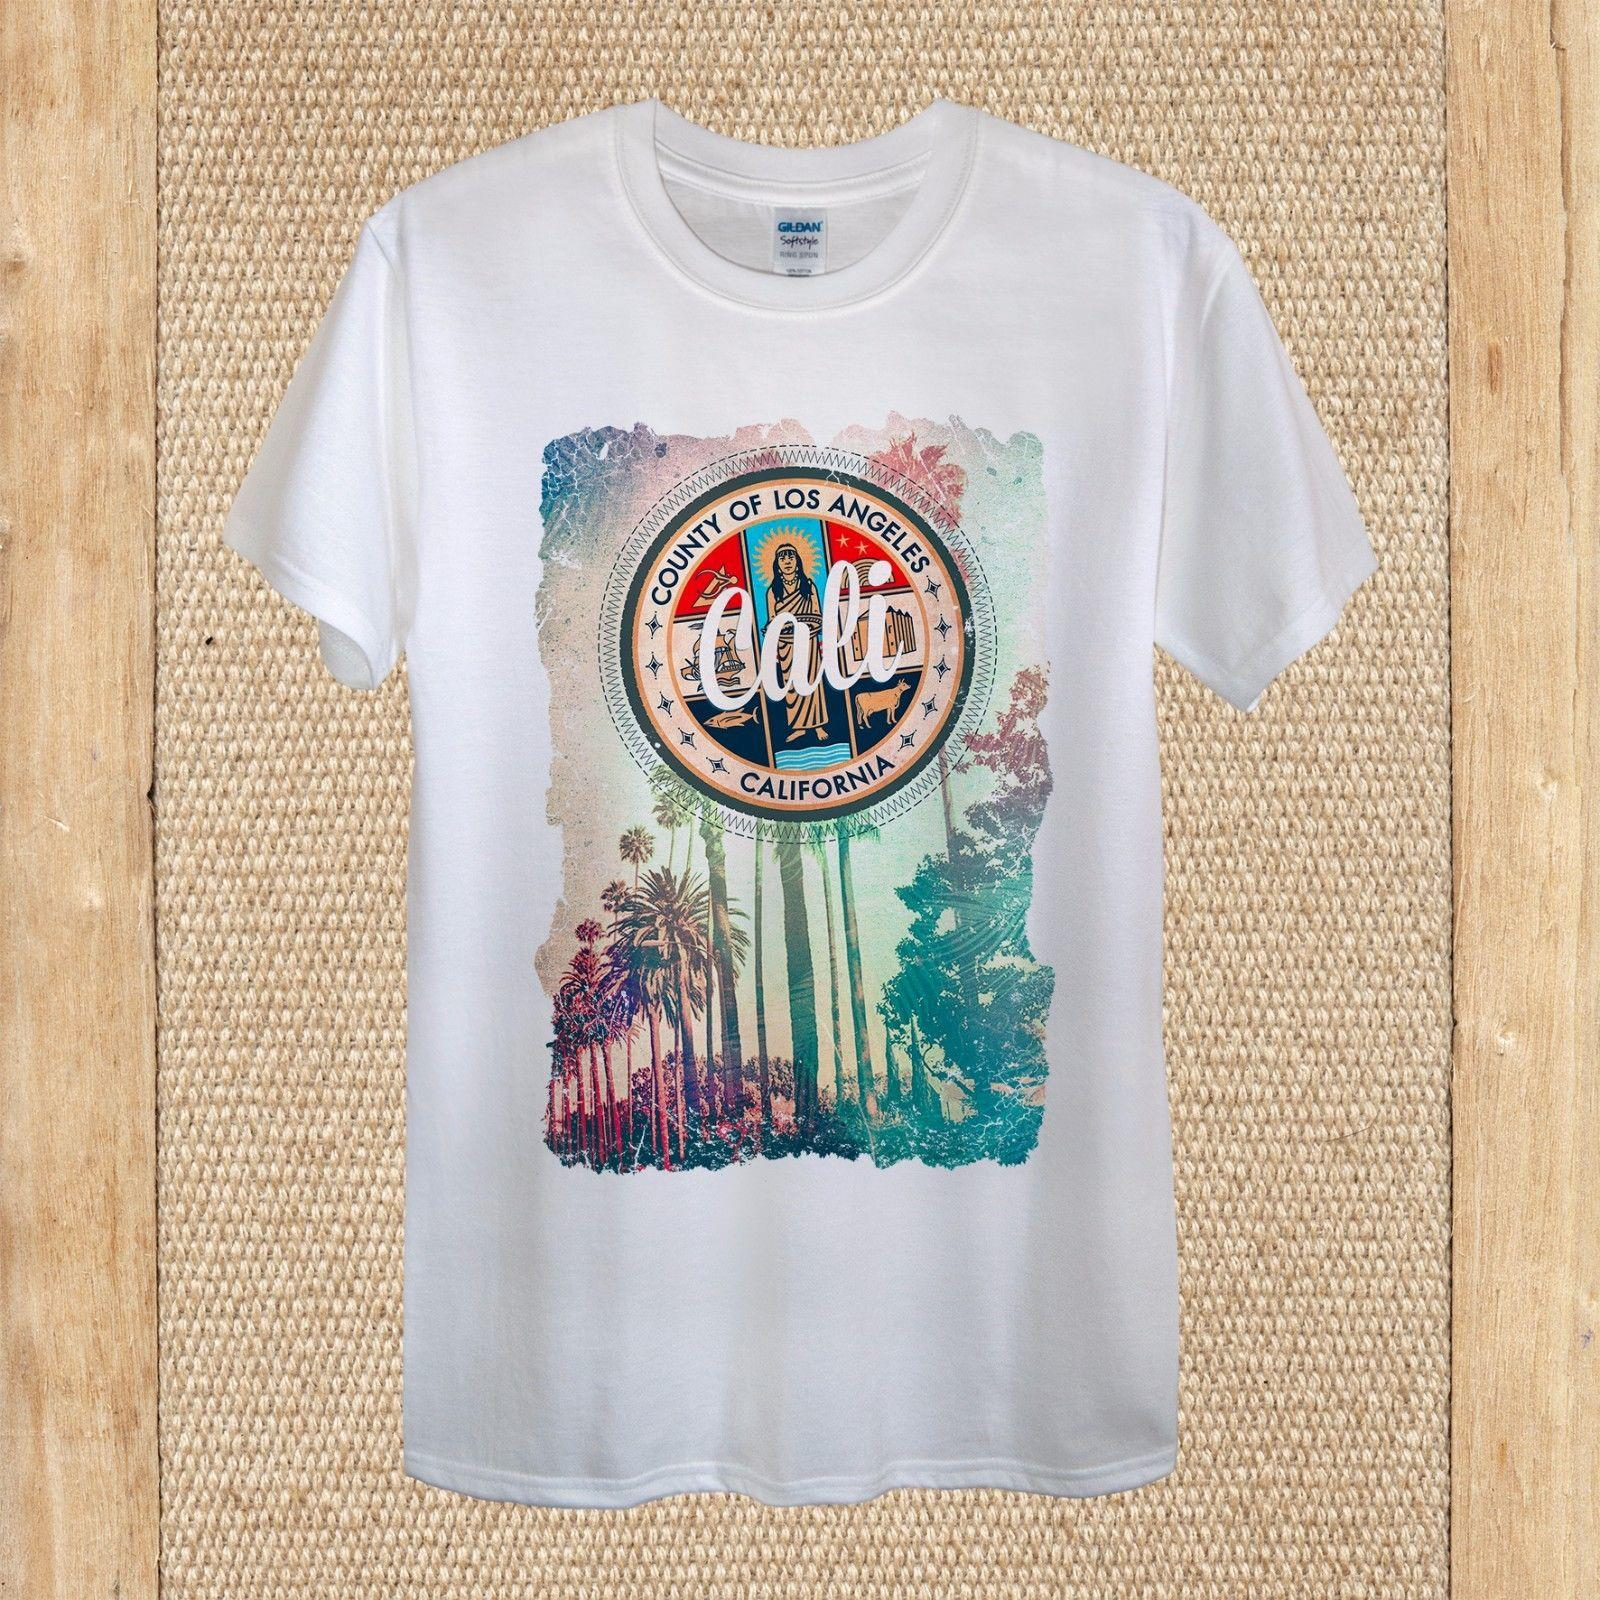 California Los Angeles T Shirt Design Travel High Quality Unisex